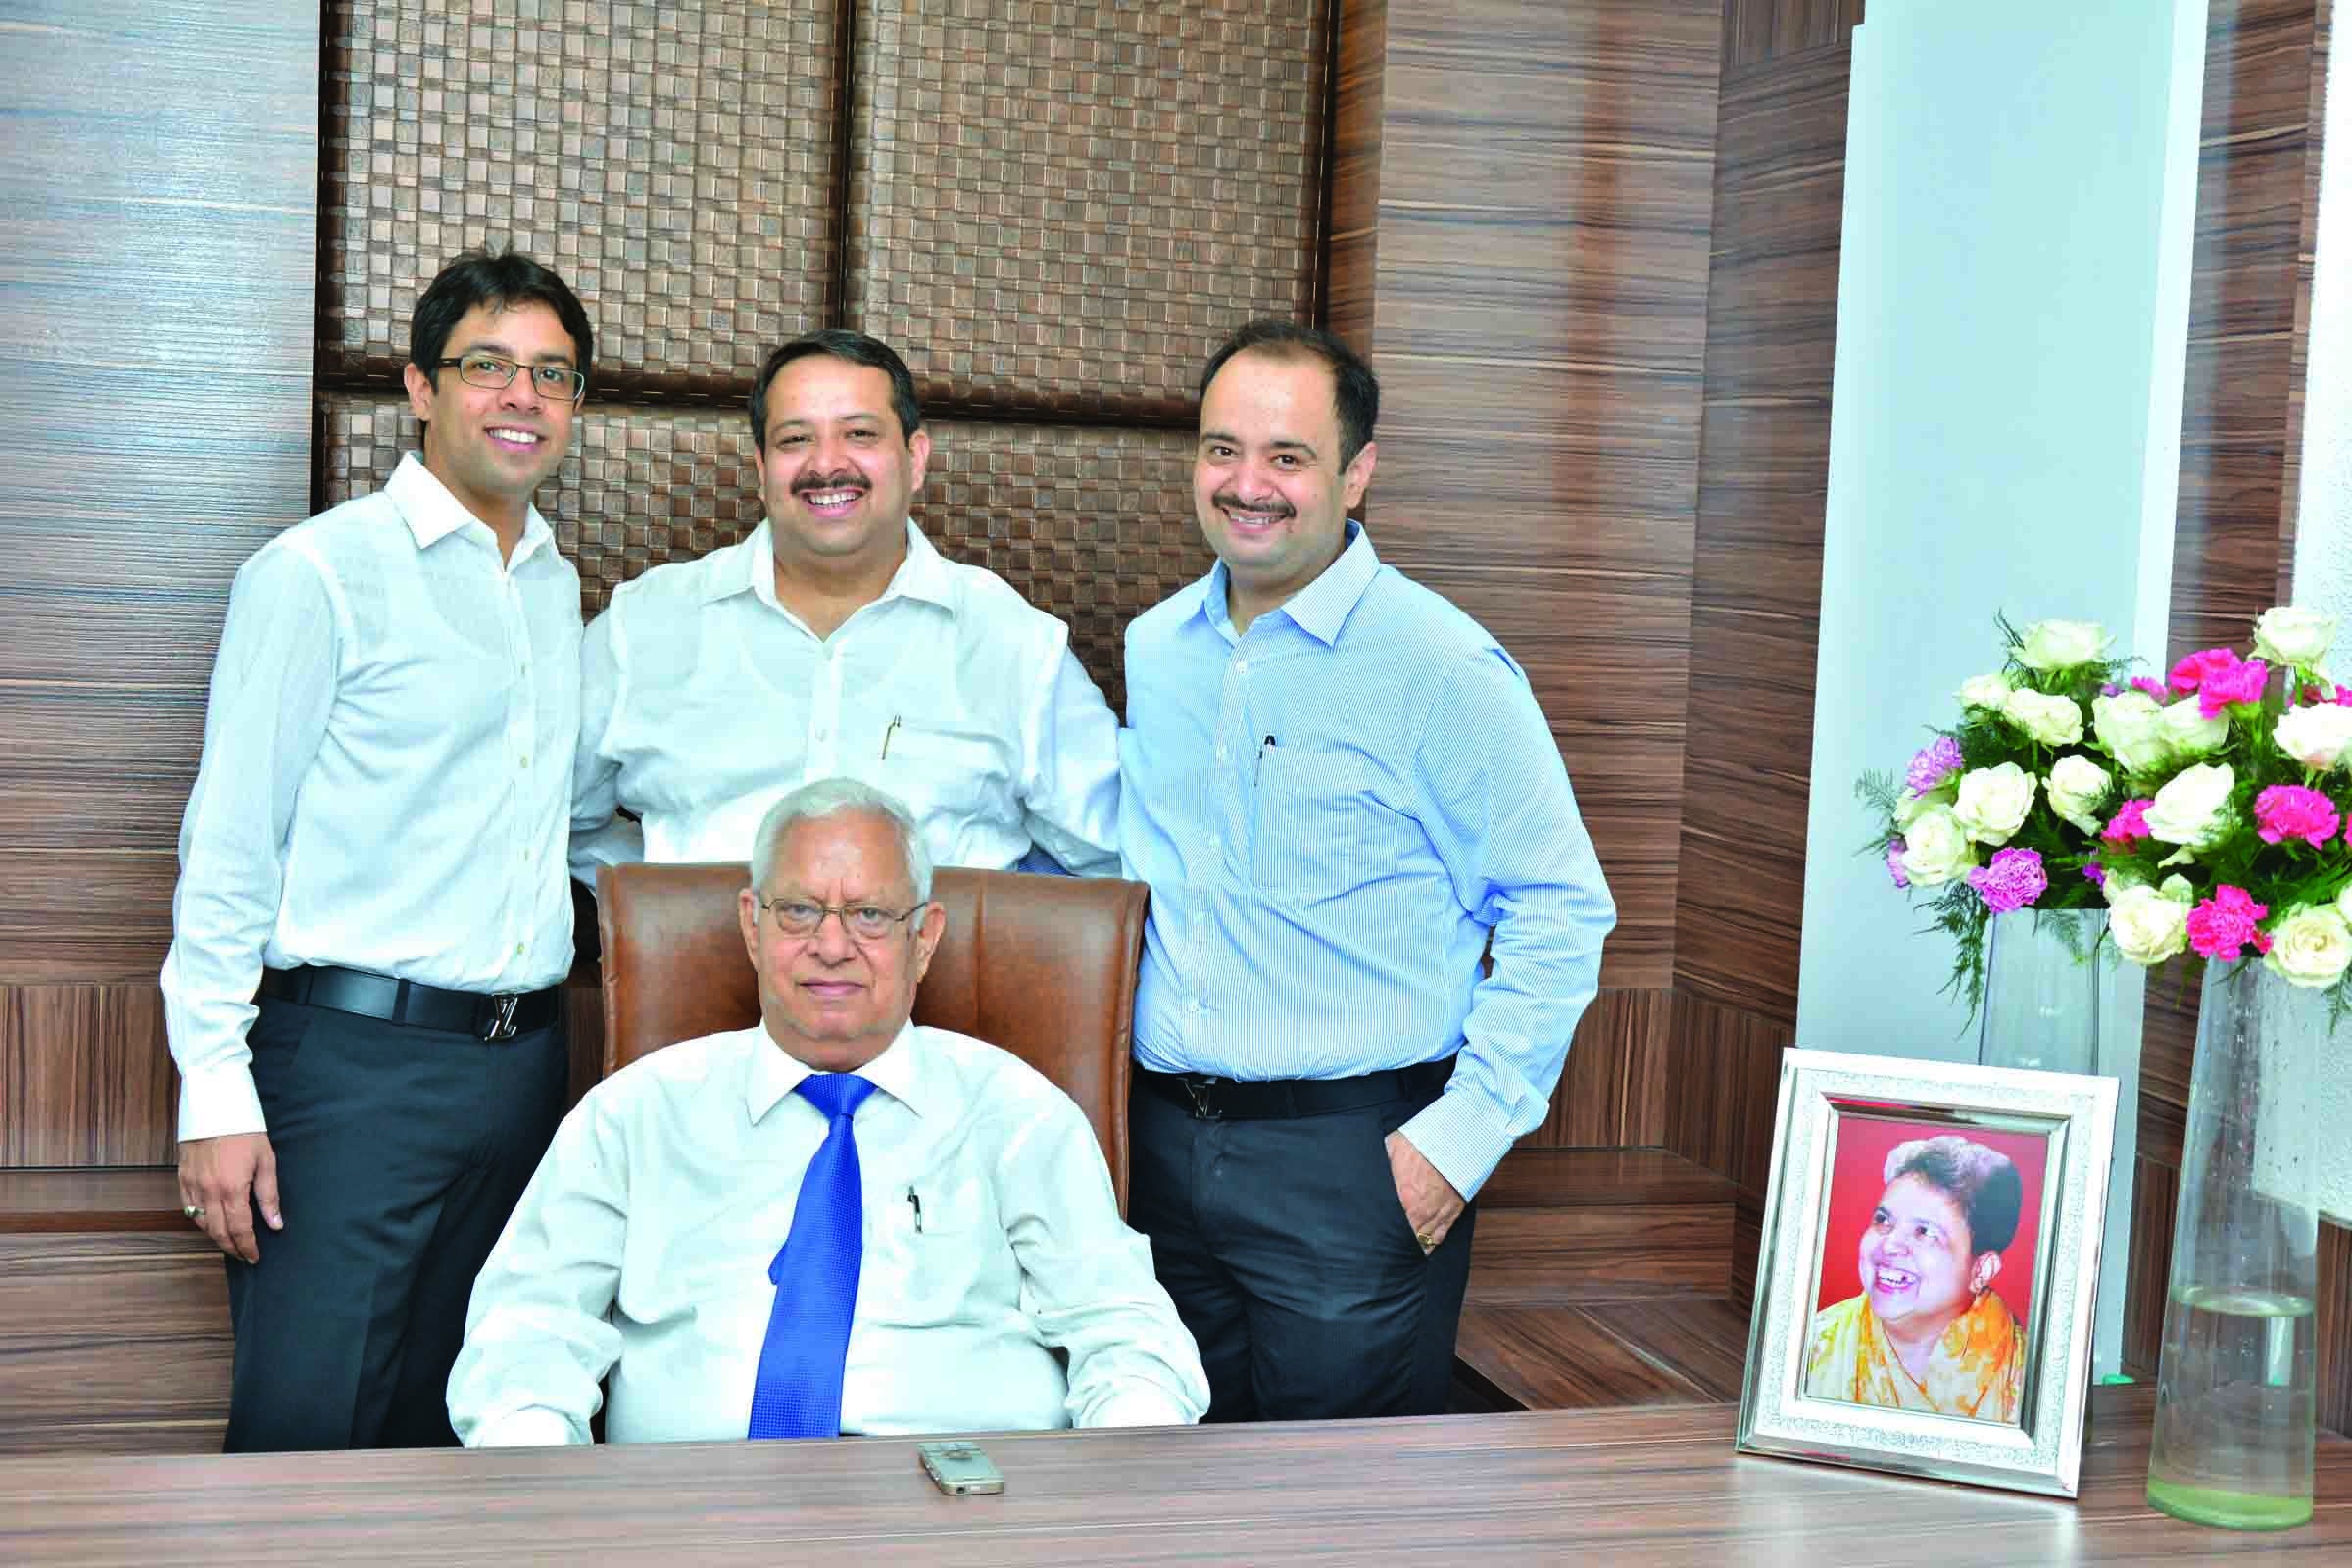 Standing (l-r): Brothers Vikas, Amit and Aman with father (sitting), Satish Gulati